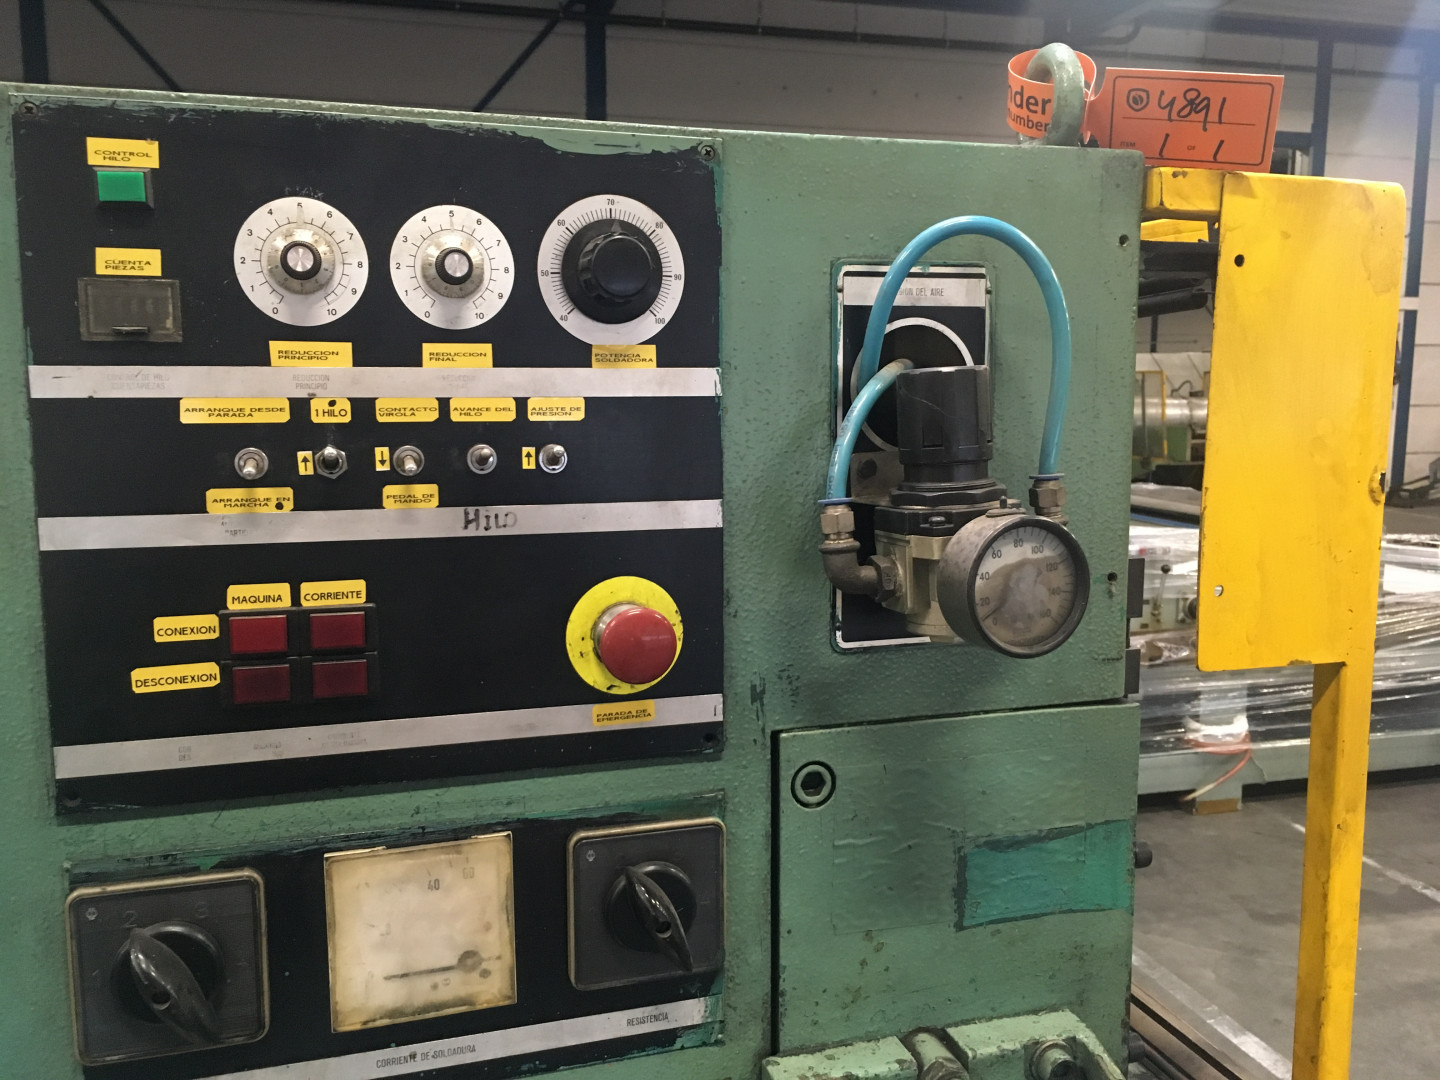 Soudronic NRZd 12/AE bodymaker welder